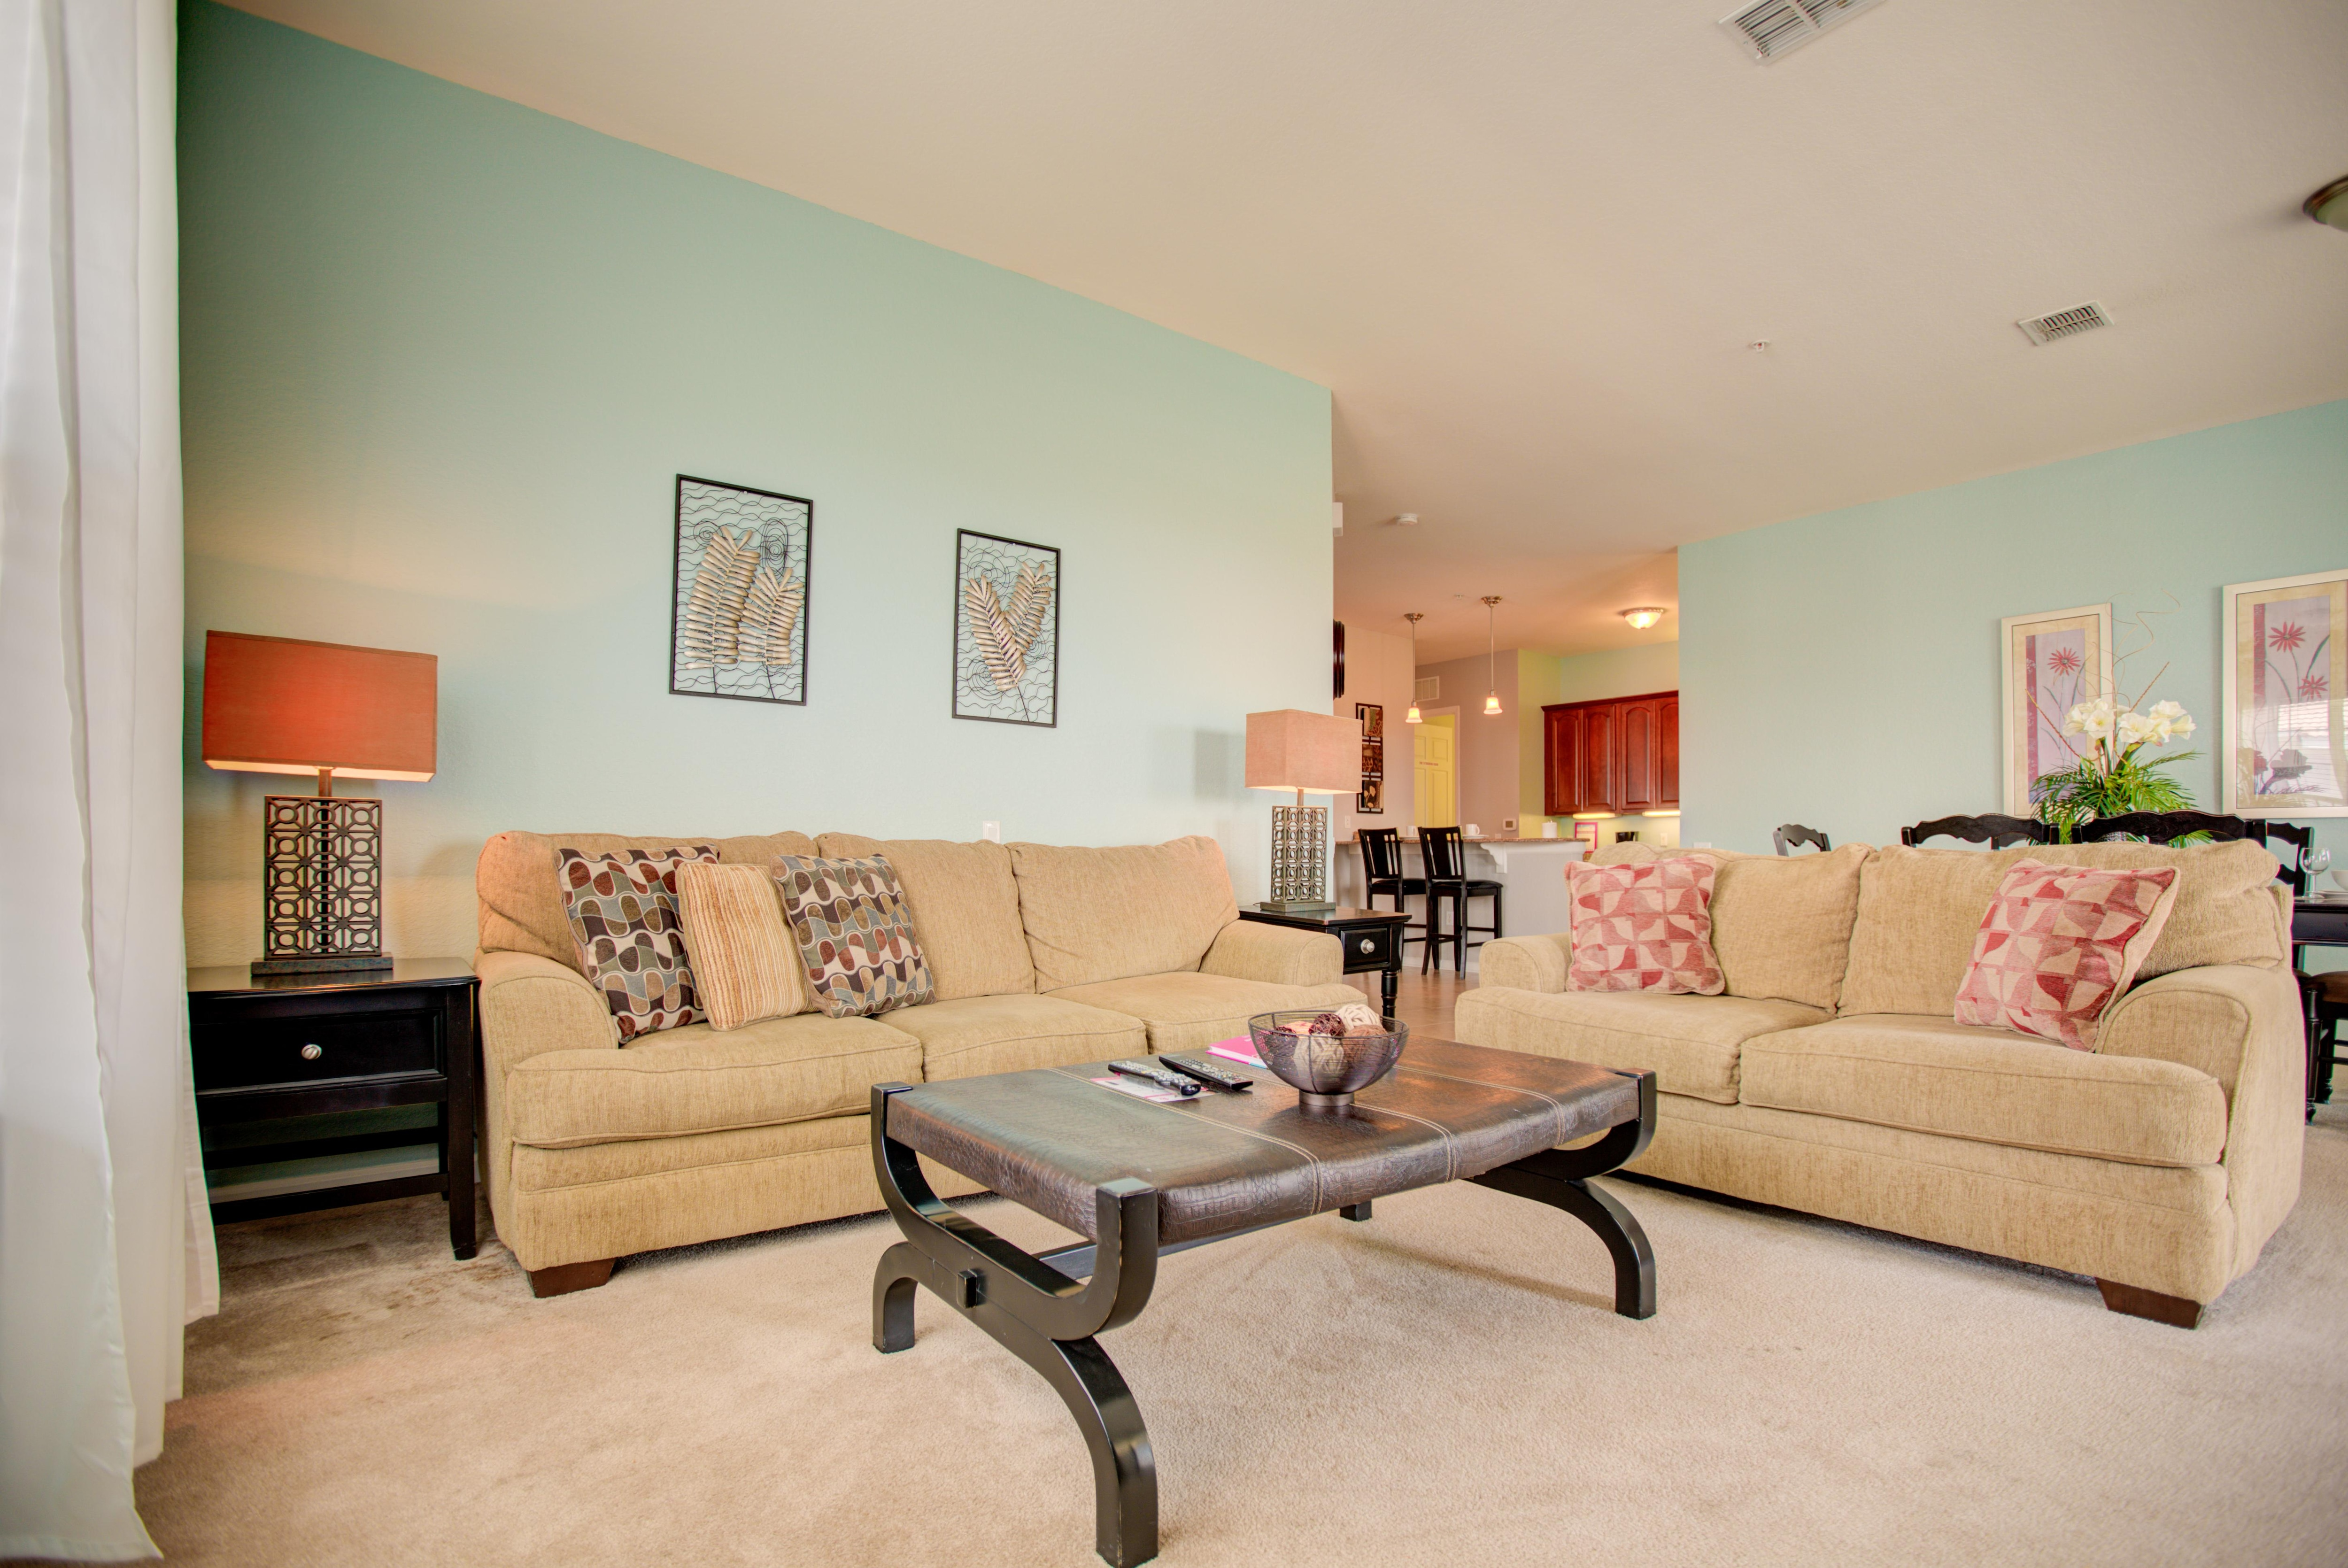 Property Image 1 - Charming, Top-Floor Condo with Lake View Balcony & Resort Access